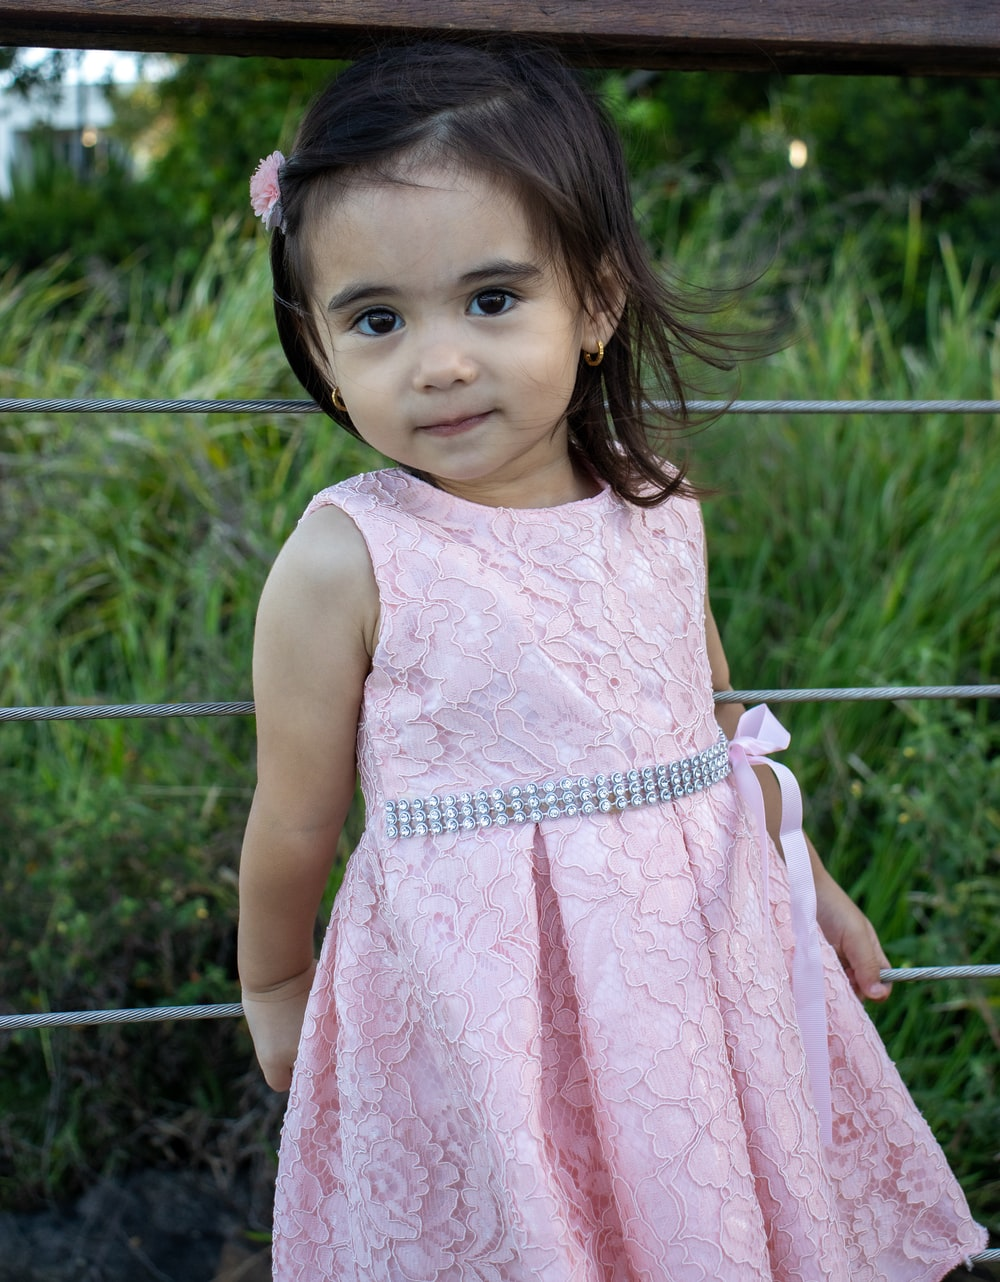 girl in pink sleeveless dress standing near gray metal fence during daytime